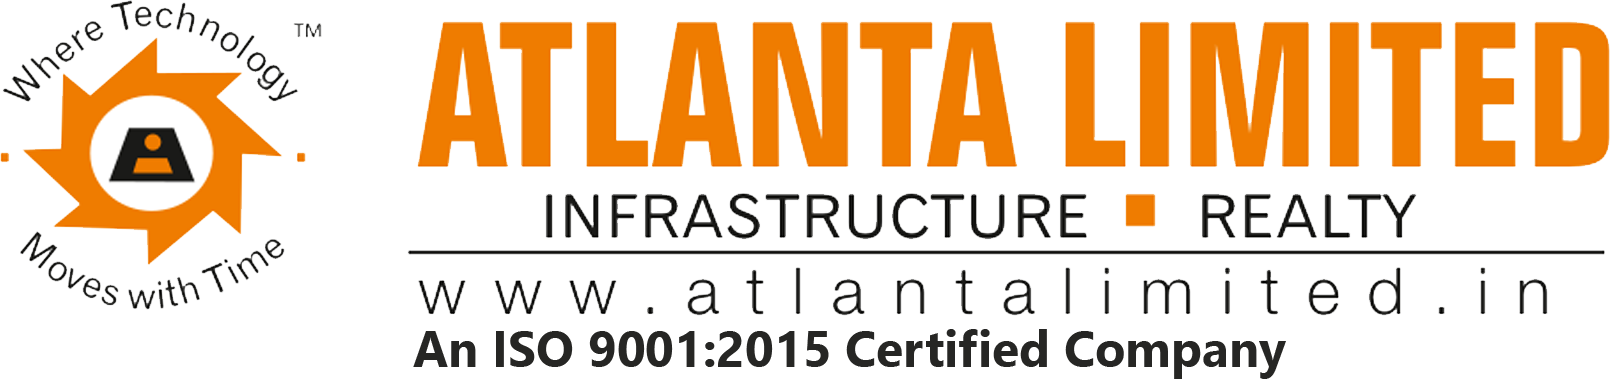 Atlanta Limited-Infrastructure | Reality